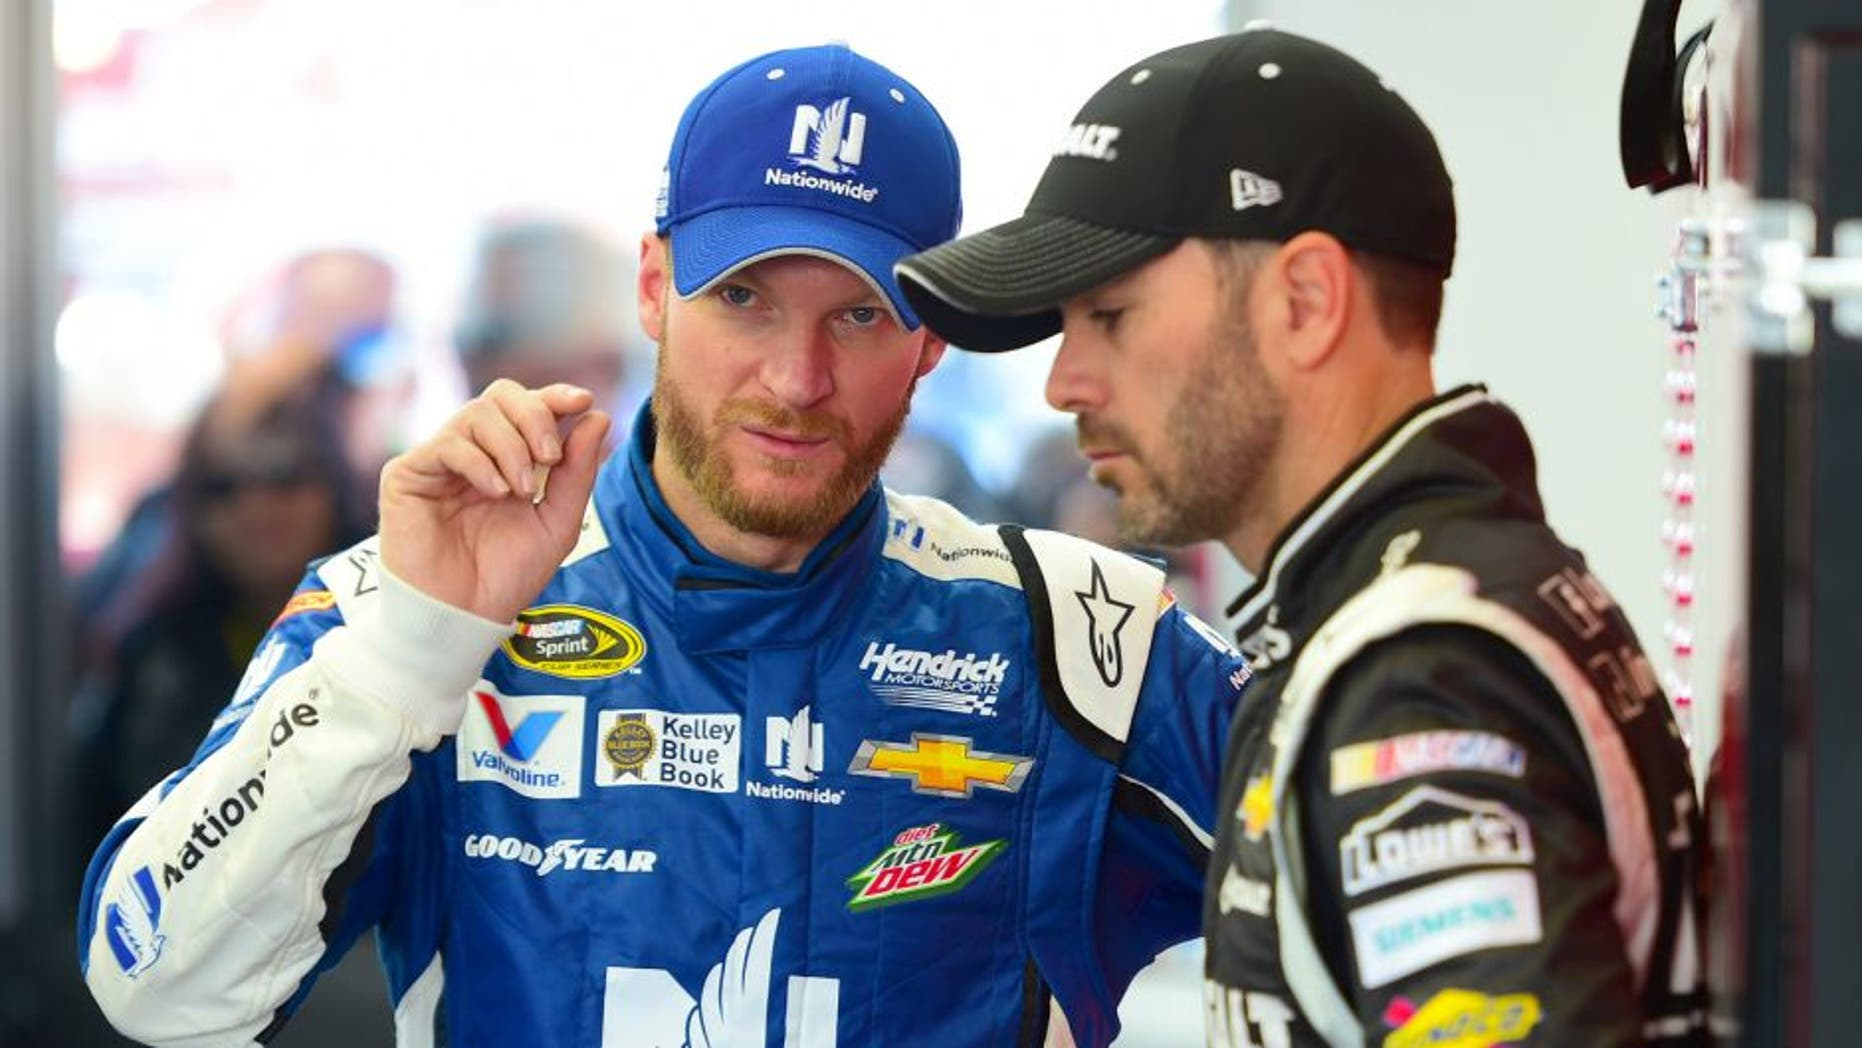 Dale Earnhardt Jr., driver of the #88 Nationwide Chevrolet, speaks with Jimmie Johnson, driver of the #48 Kobalt Tools Chevrolet, in the garage during qualifying for the NASCAR XFINITY Series Boyd Gaming 300 at Las Vegas Motor Speedway on March 7, 2015 in Las Vegas, Nevada. (Photo by Robert Laberge/Getty Images)